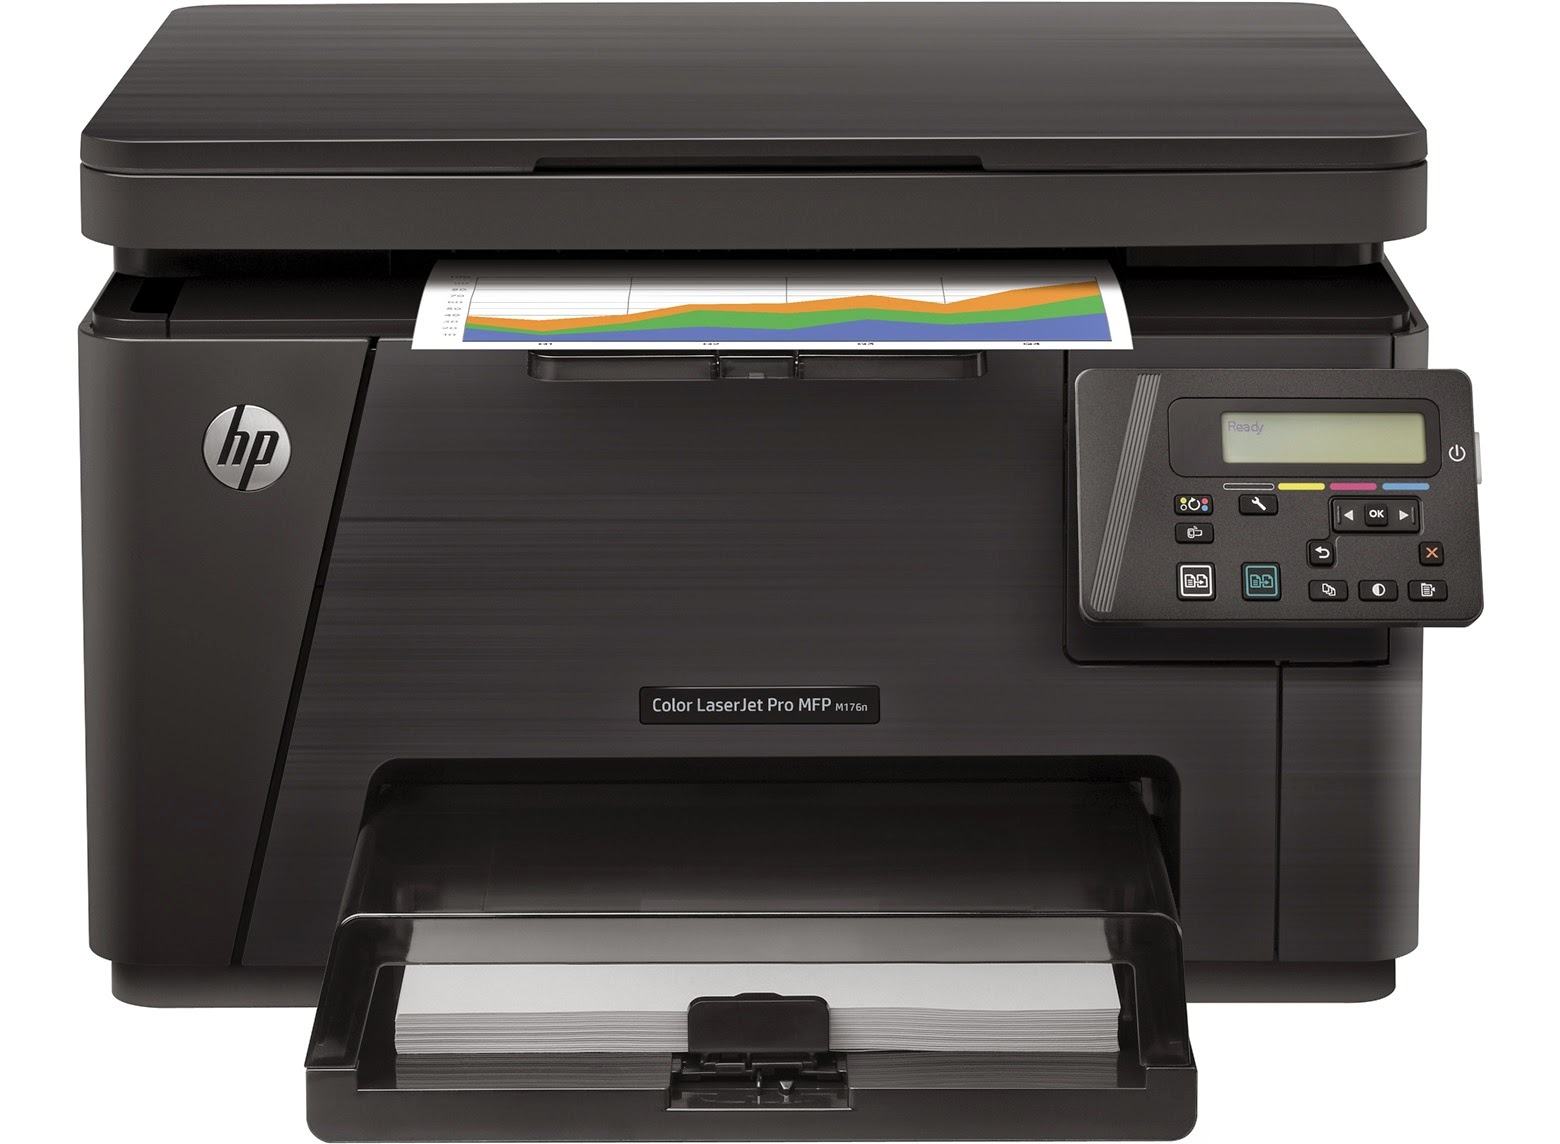 hp laserjet p1505 driver download windows 10 64 bit